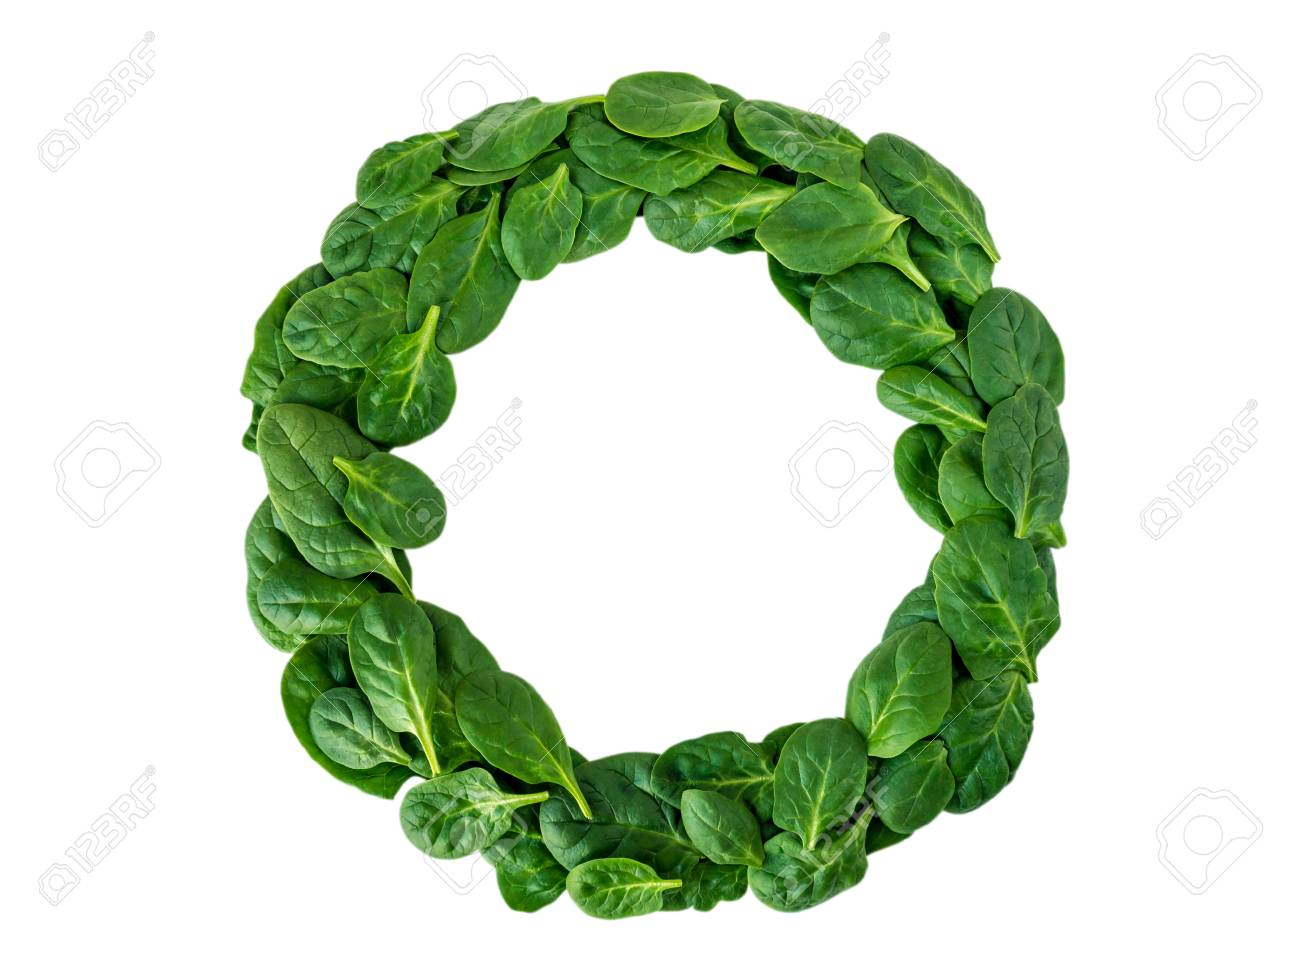 weight loss diet challenge winner round wreath of green spinach